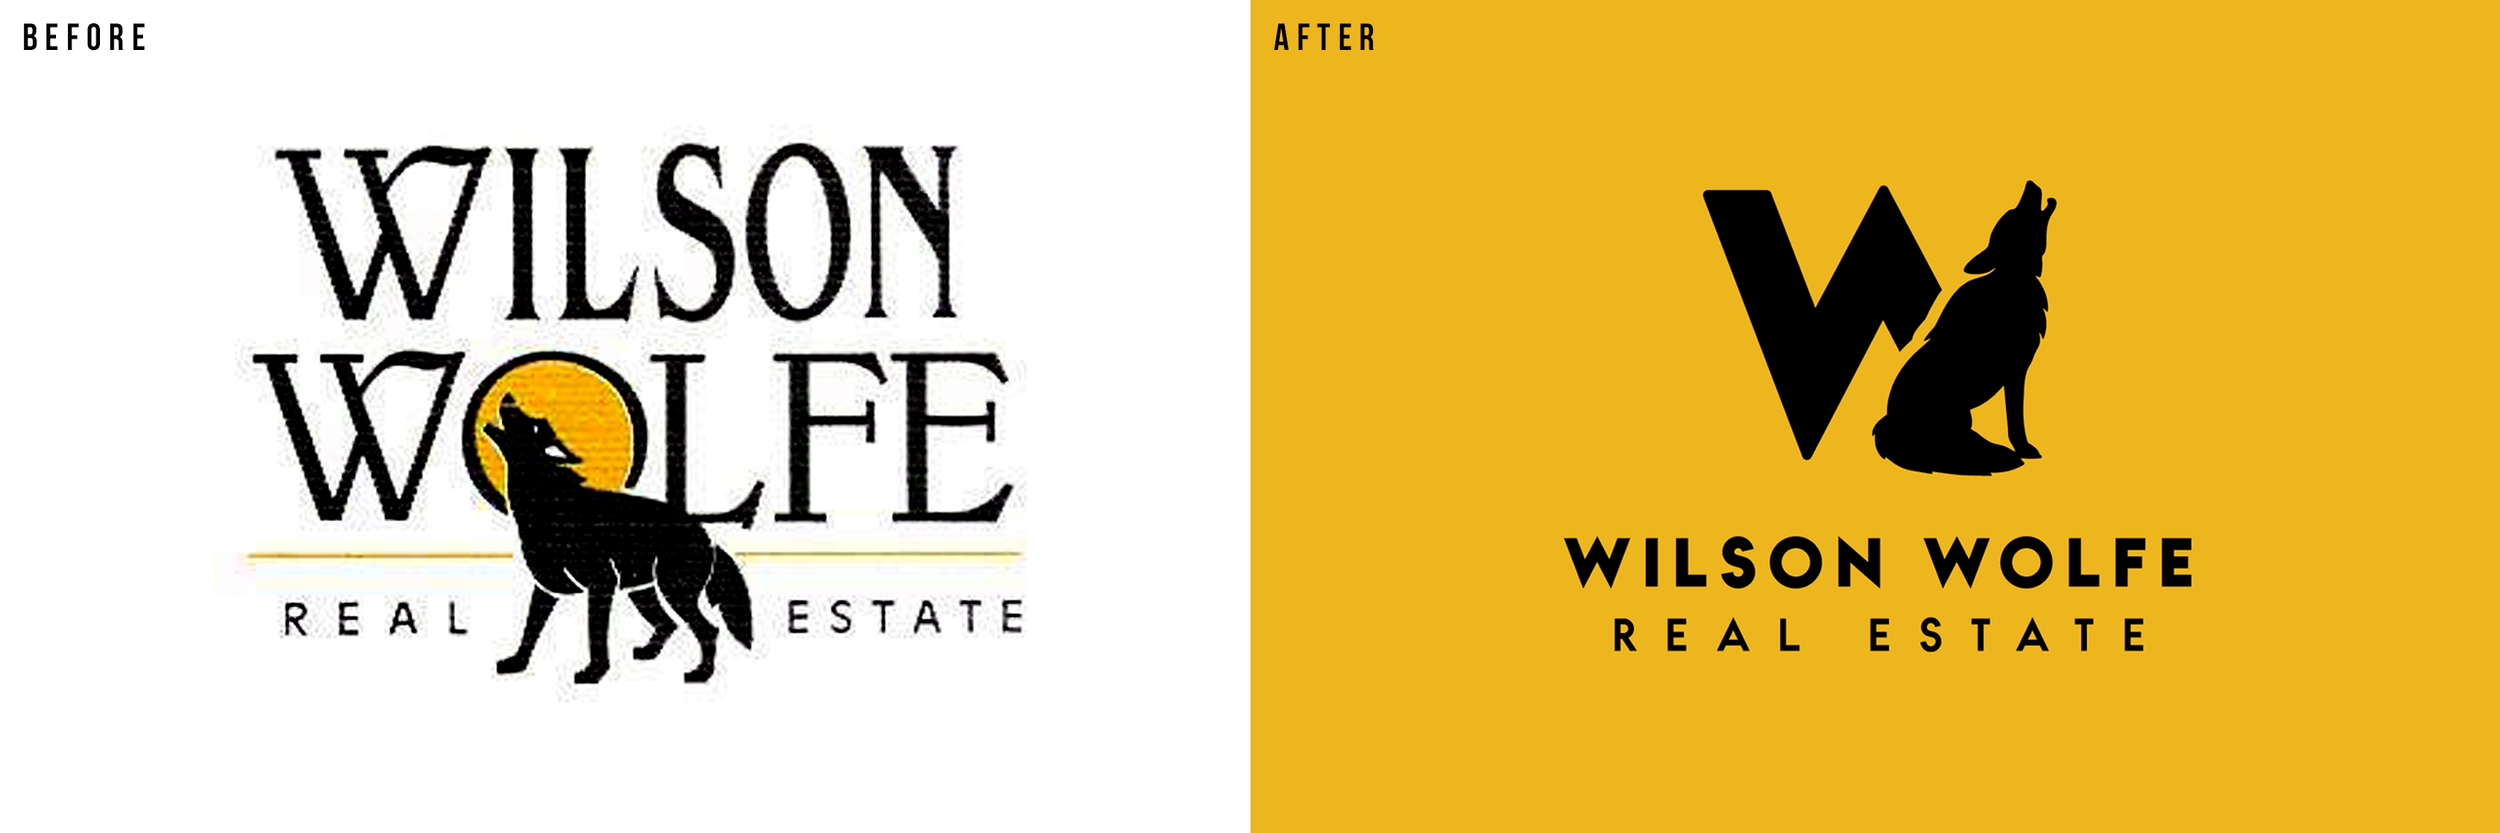 Logo-ReDesign-Before-And-After.jpg